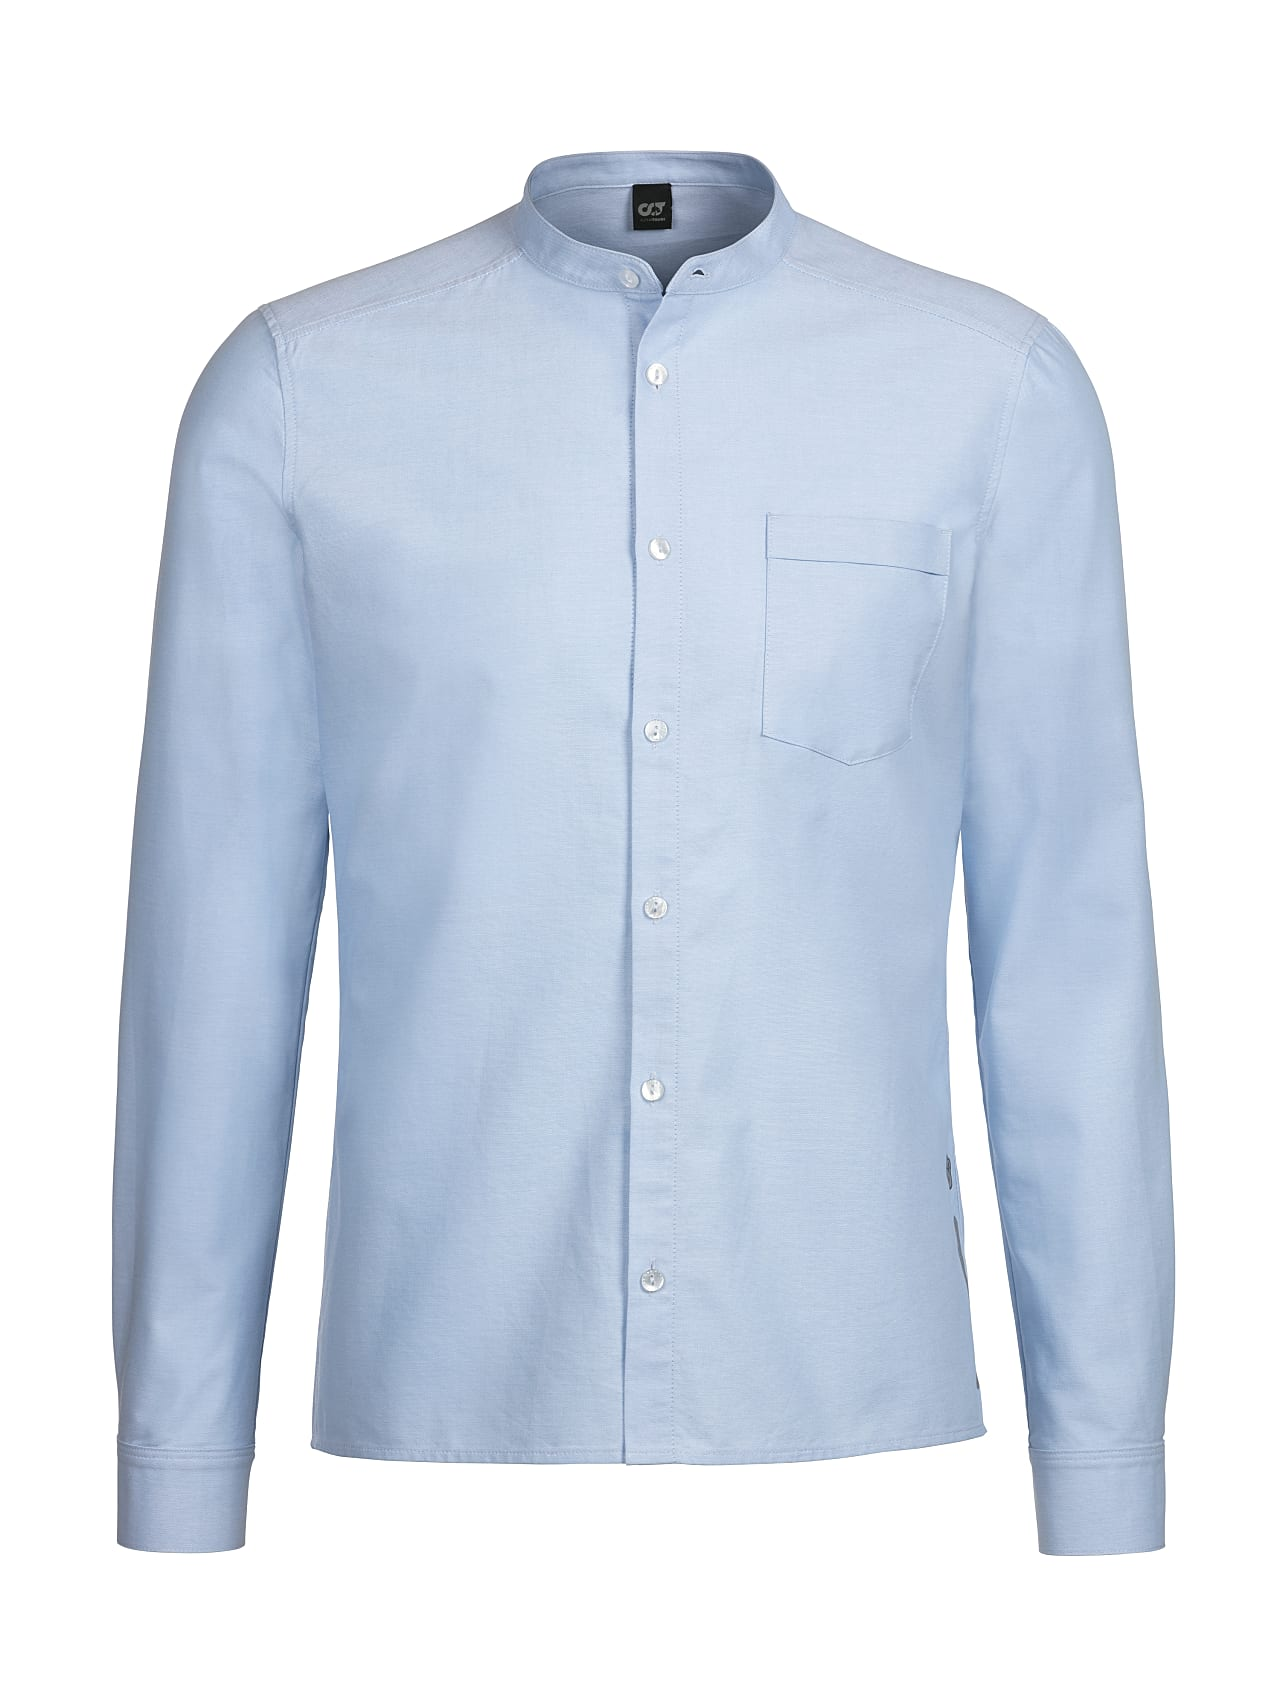 WIDT V8.Y4.01 Classic Oxford Shirt with Stand-up Collar light blue Back Alpha Tauri